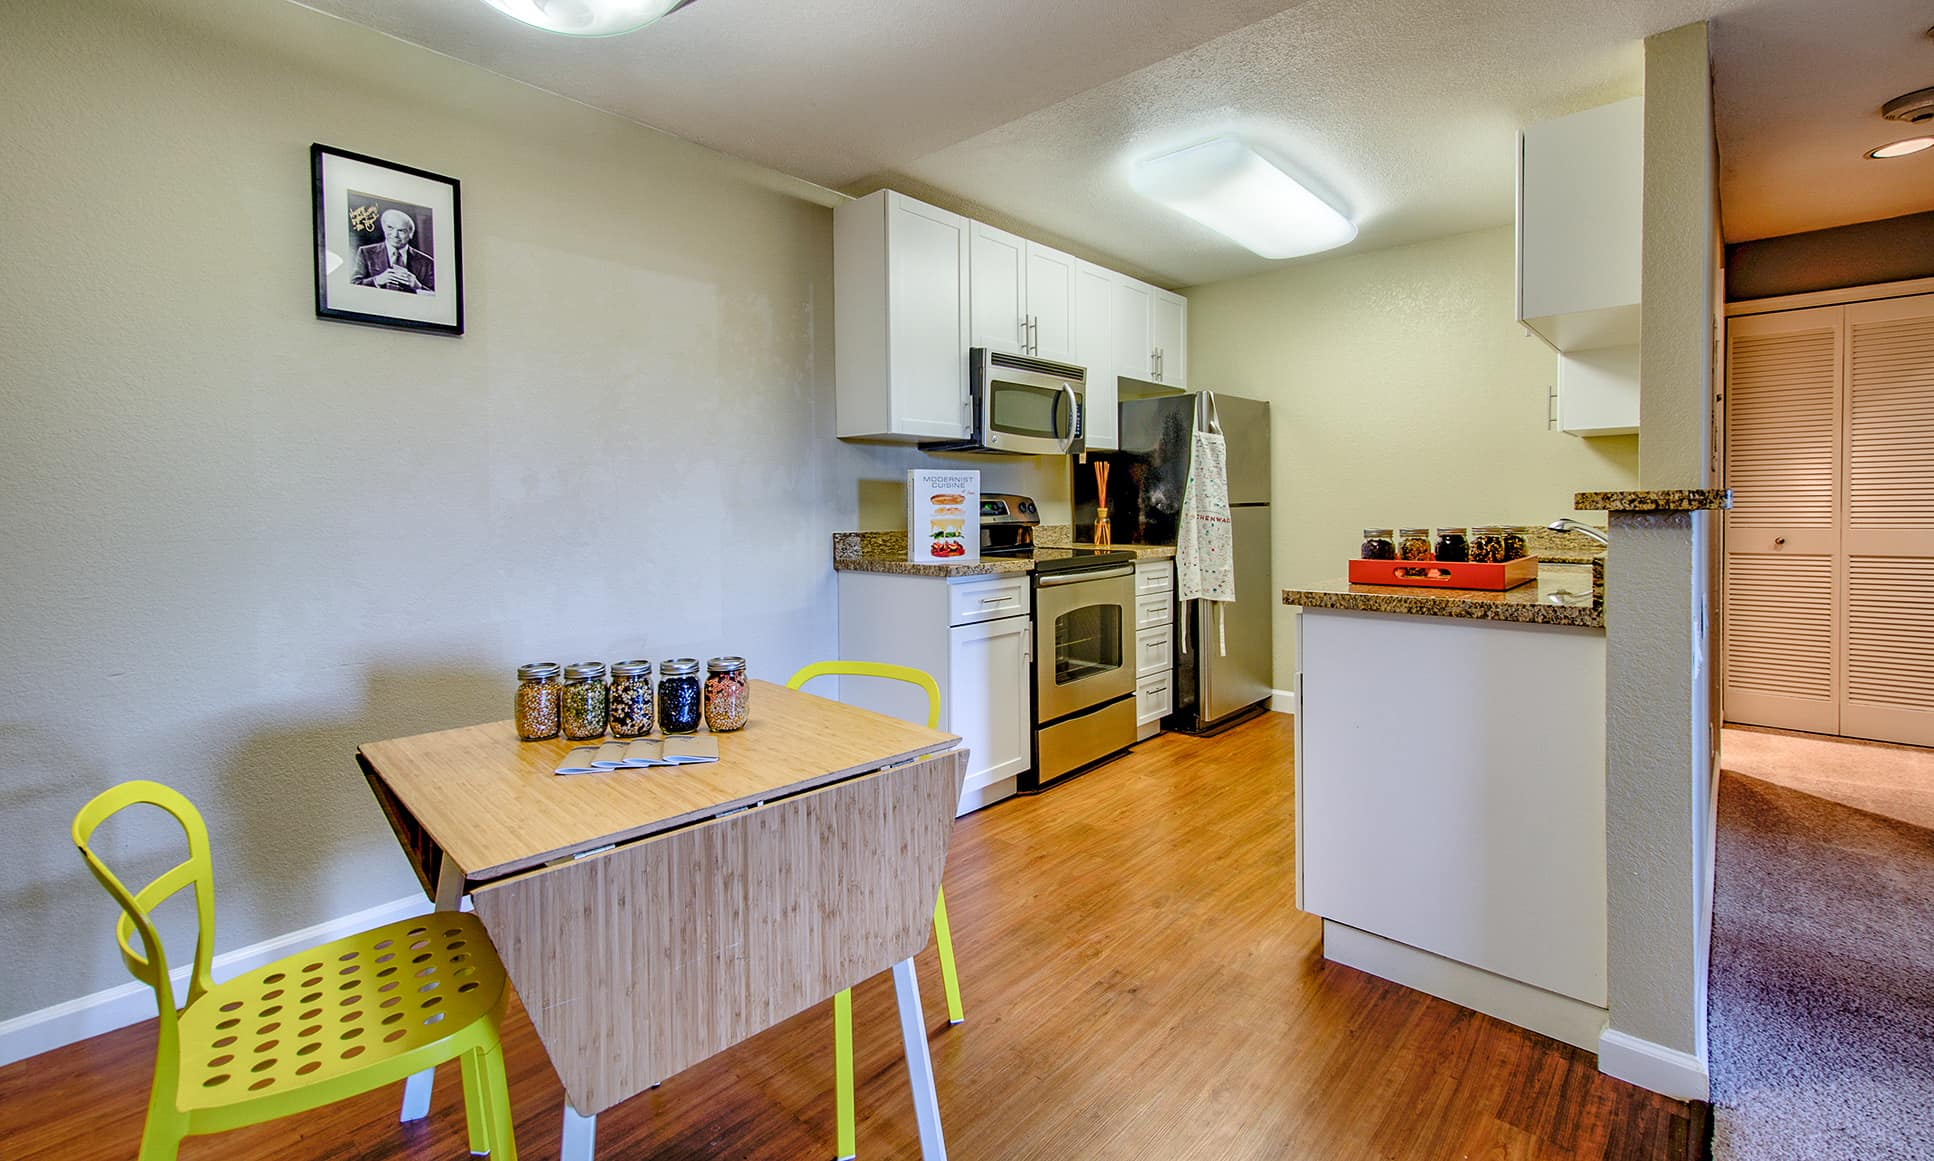 Orchard Glen Apartments apartments in Santa Clara CA to rent photo 10